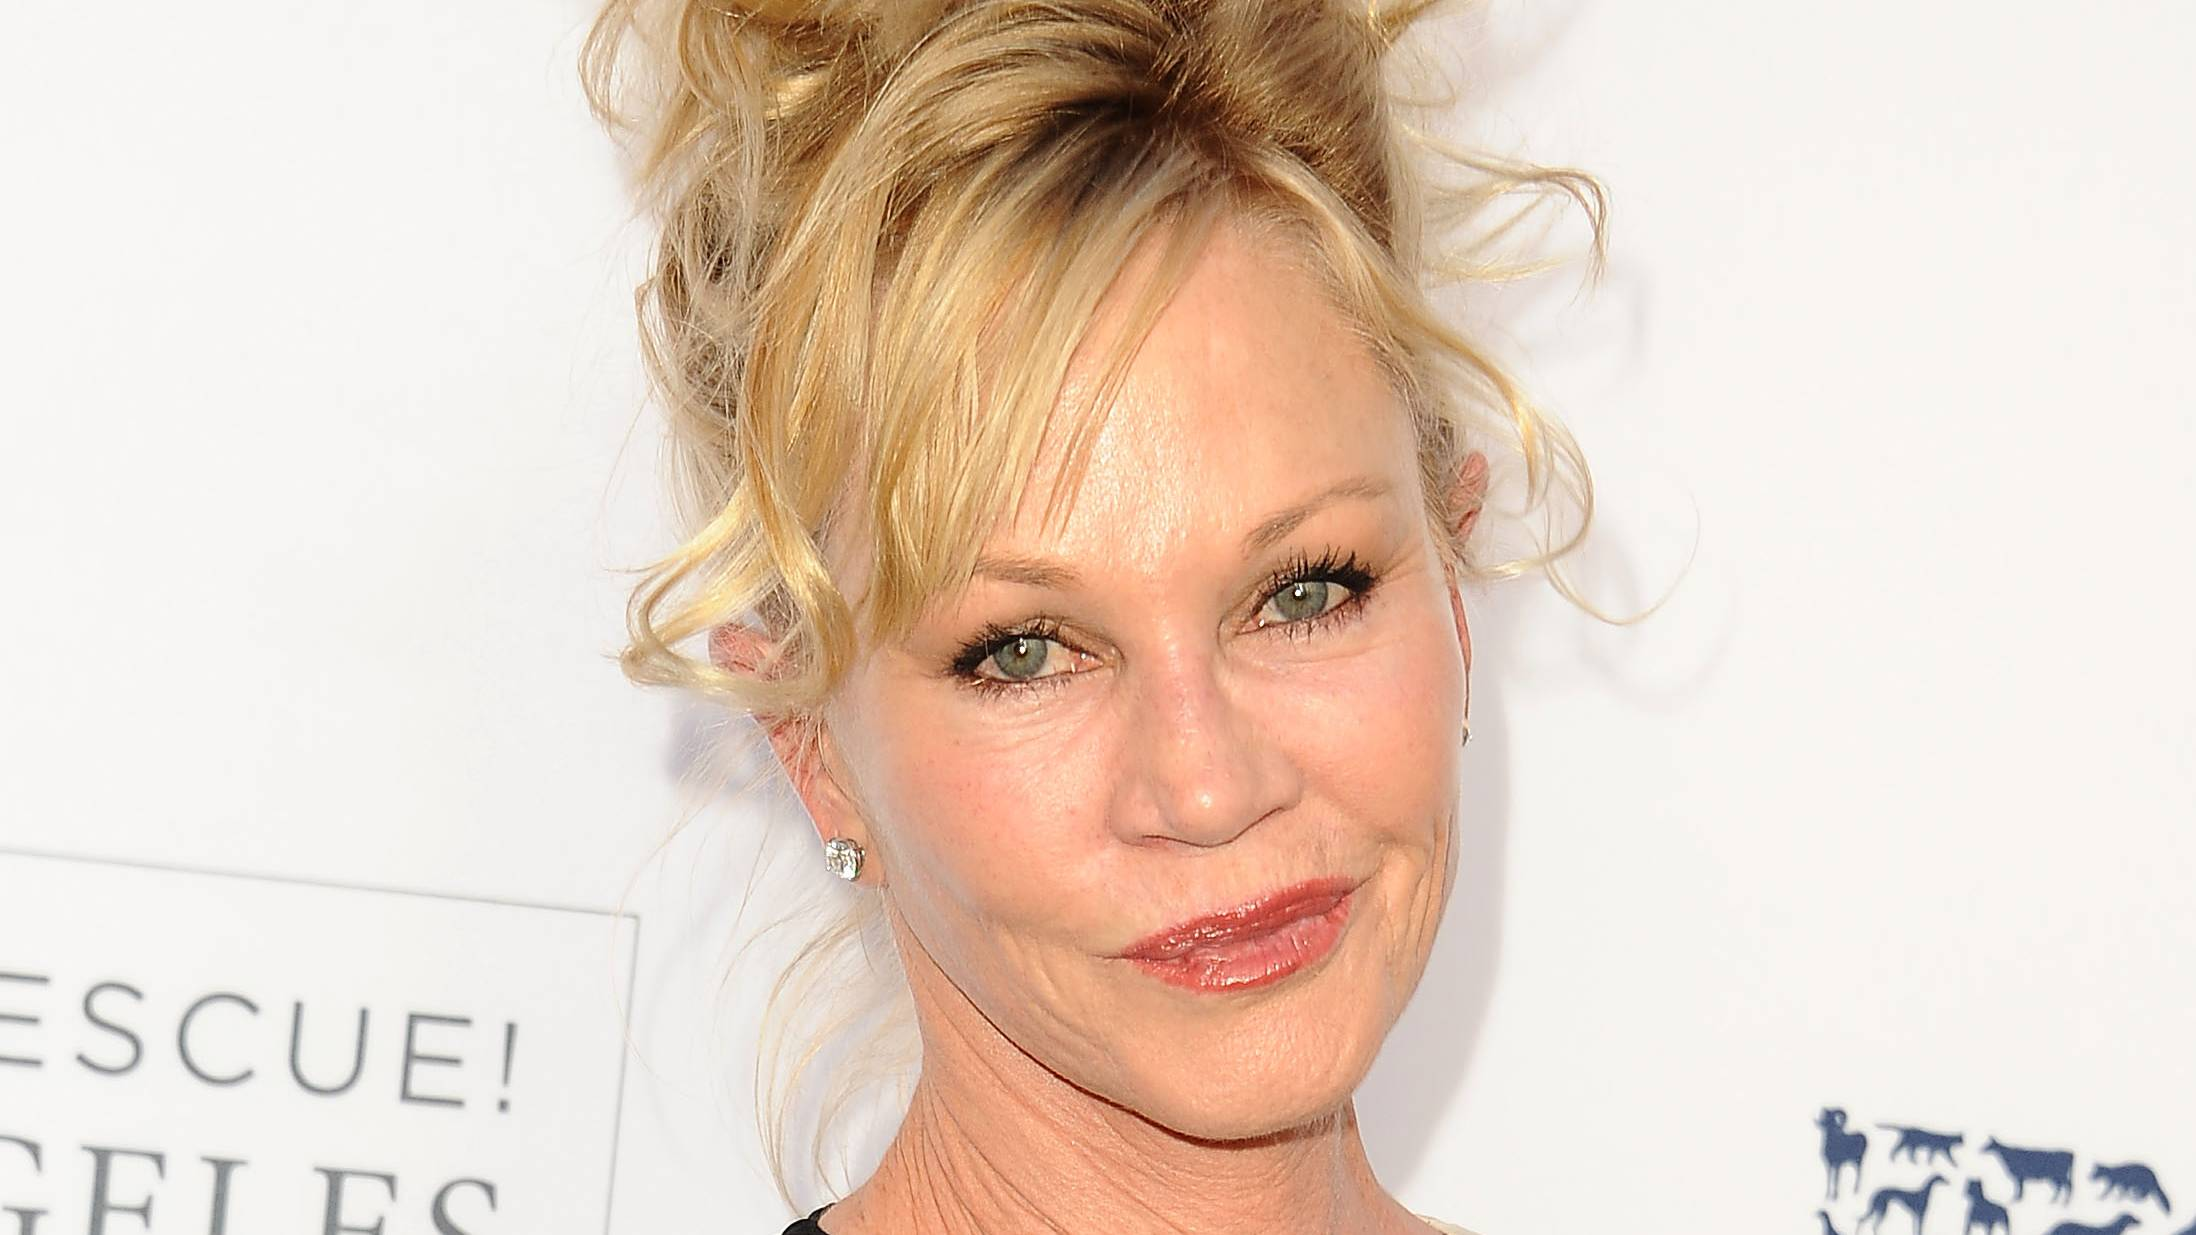 """60 is the new 40!"" Melanie Griffith flaunts her incredible bikini body at 61"